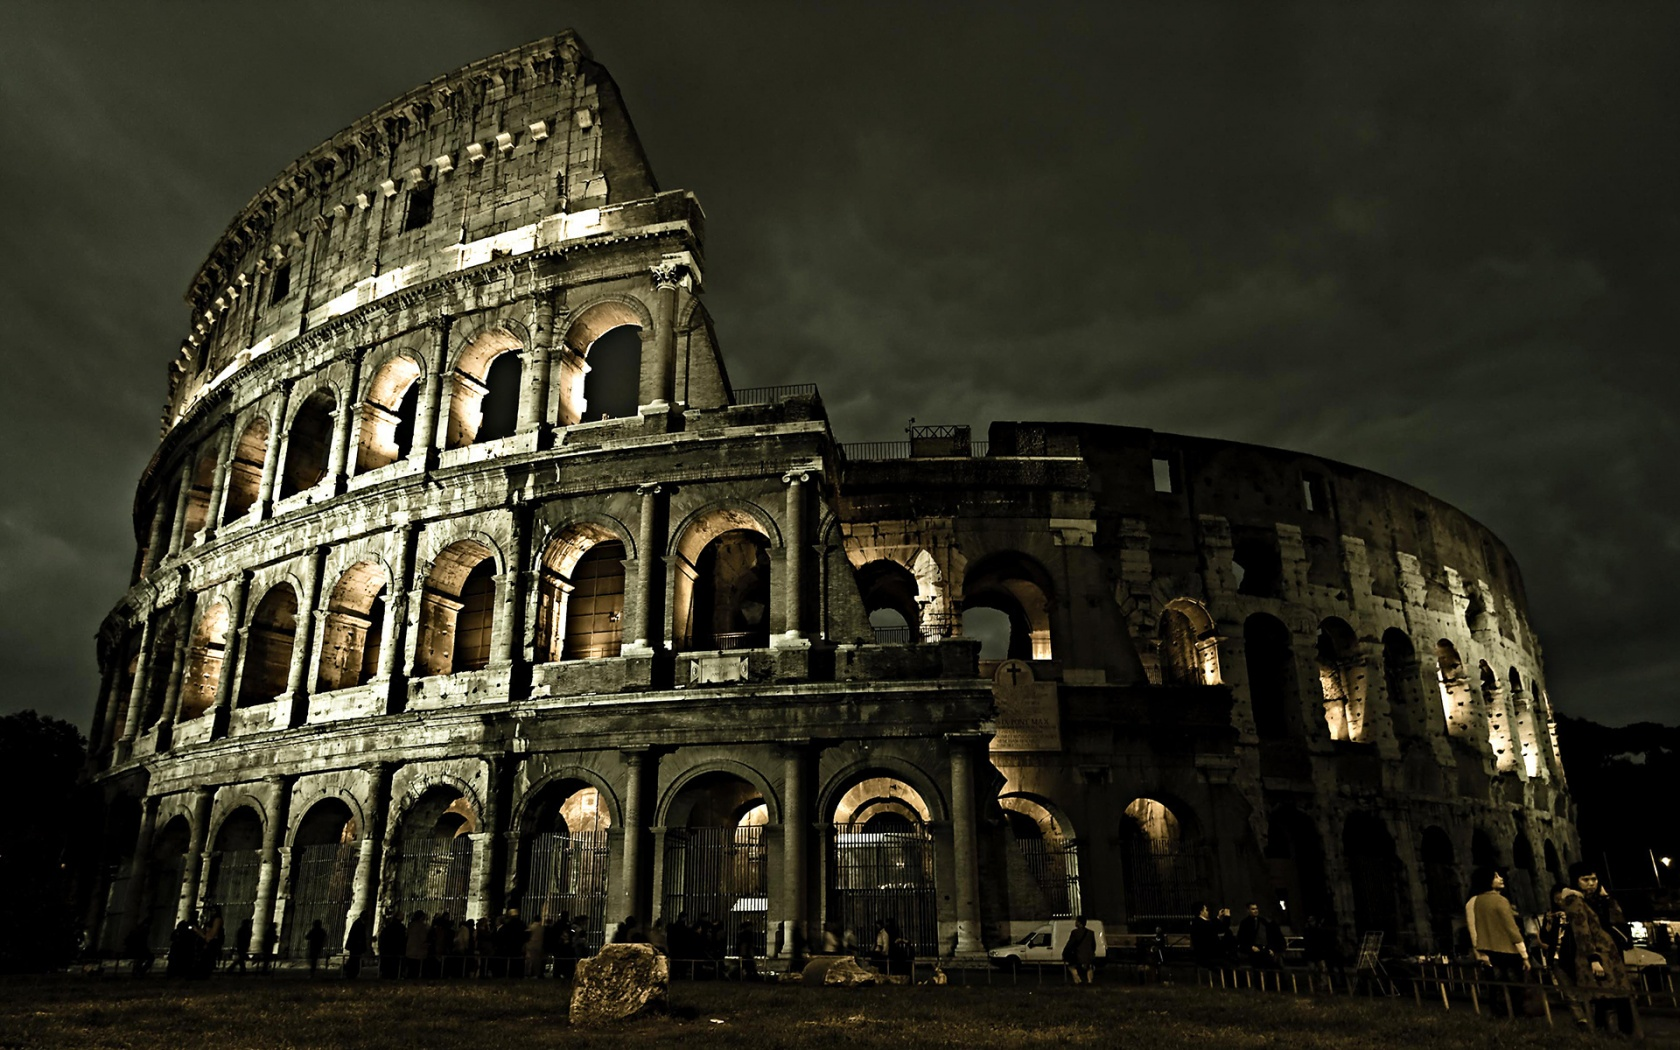 Colosseum Roman Architecture Wallpapers | HD Wallpapers